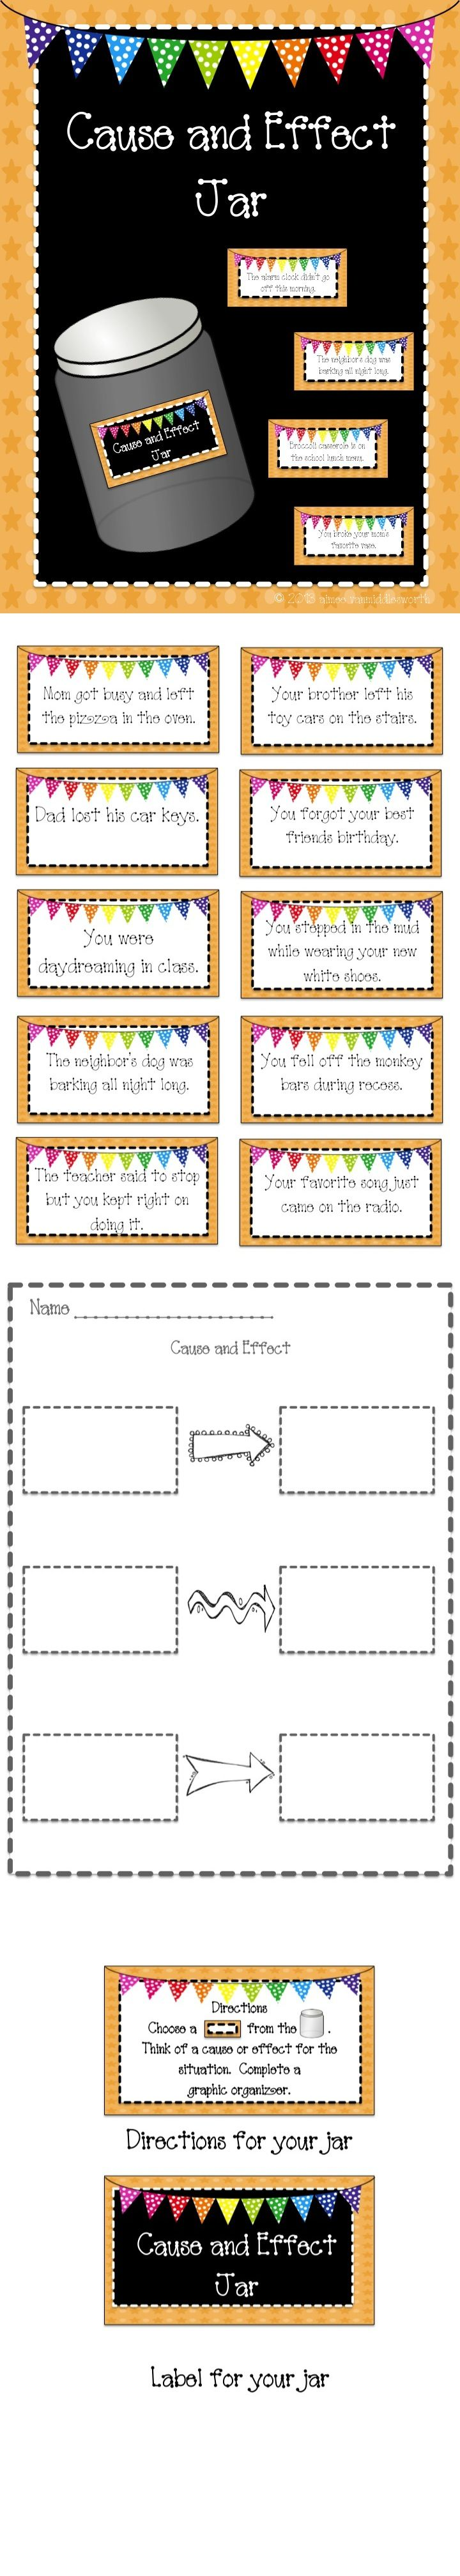 A cause and effect activity for workstations or early finishers!